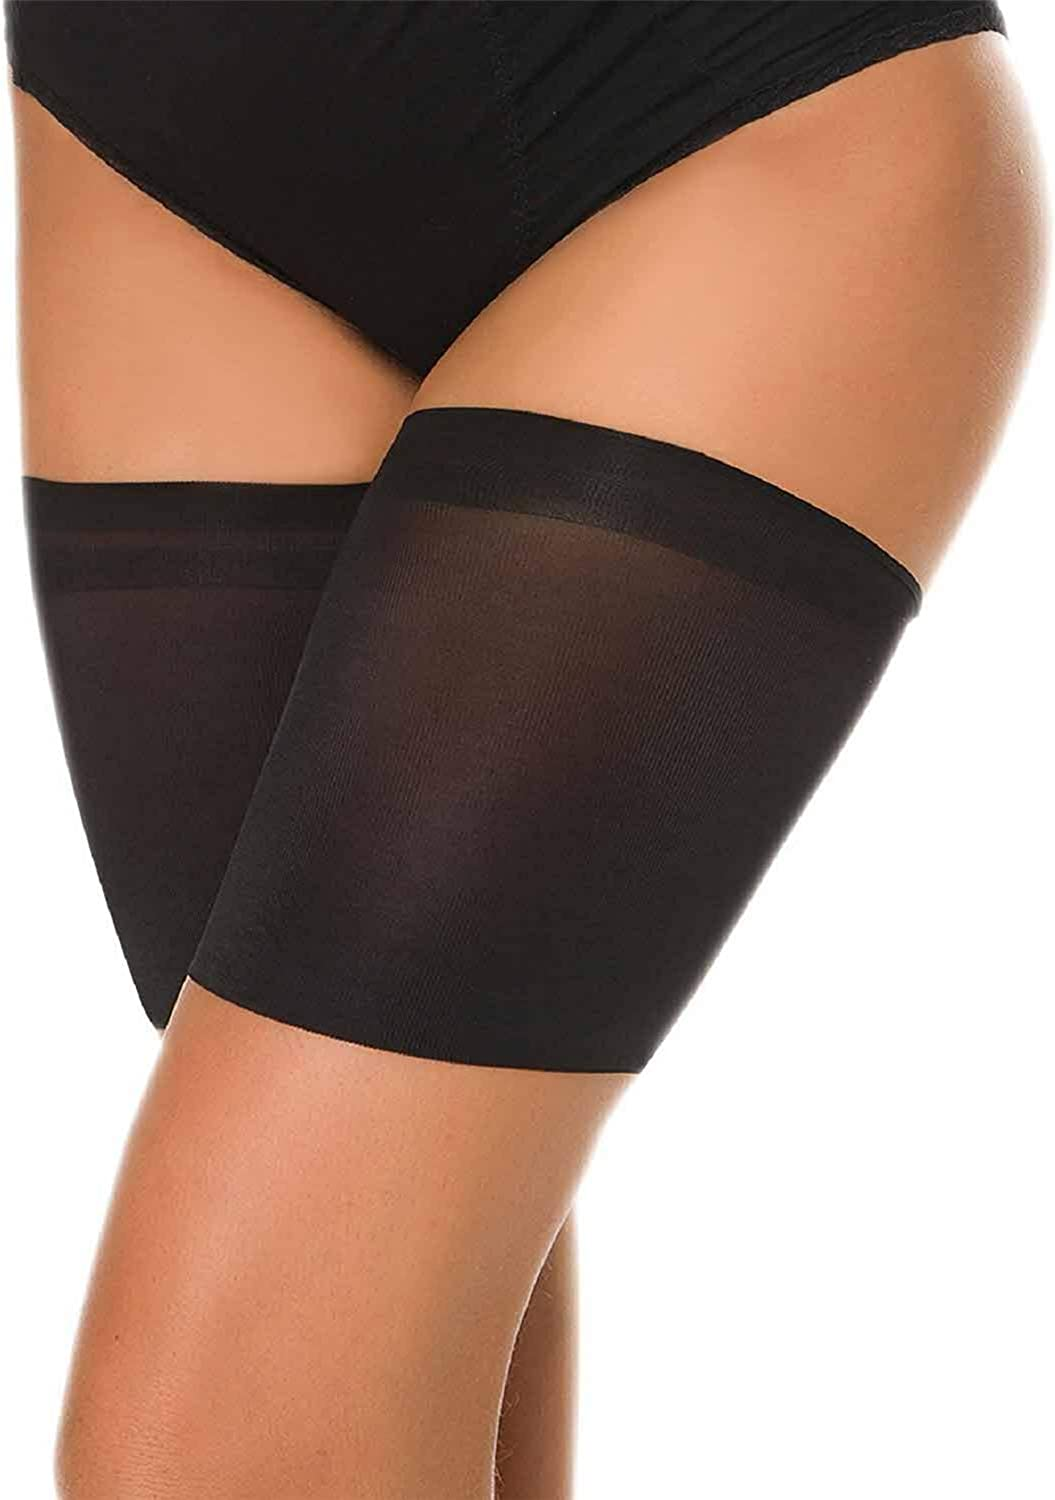 Tuopuda Anti Chafing Thigh Bands Unisex Thigh Guards Elastic Leg Bands Outdoor Sports Thigh Protector with Non Slip Satin Silicone Elastic Anti-chafing Thigh Bands Prevent Thigh Chafing